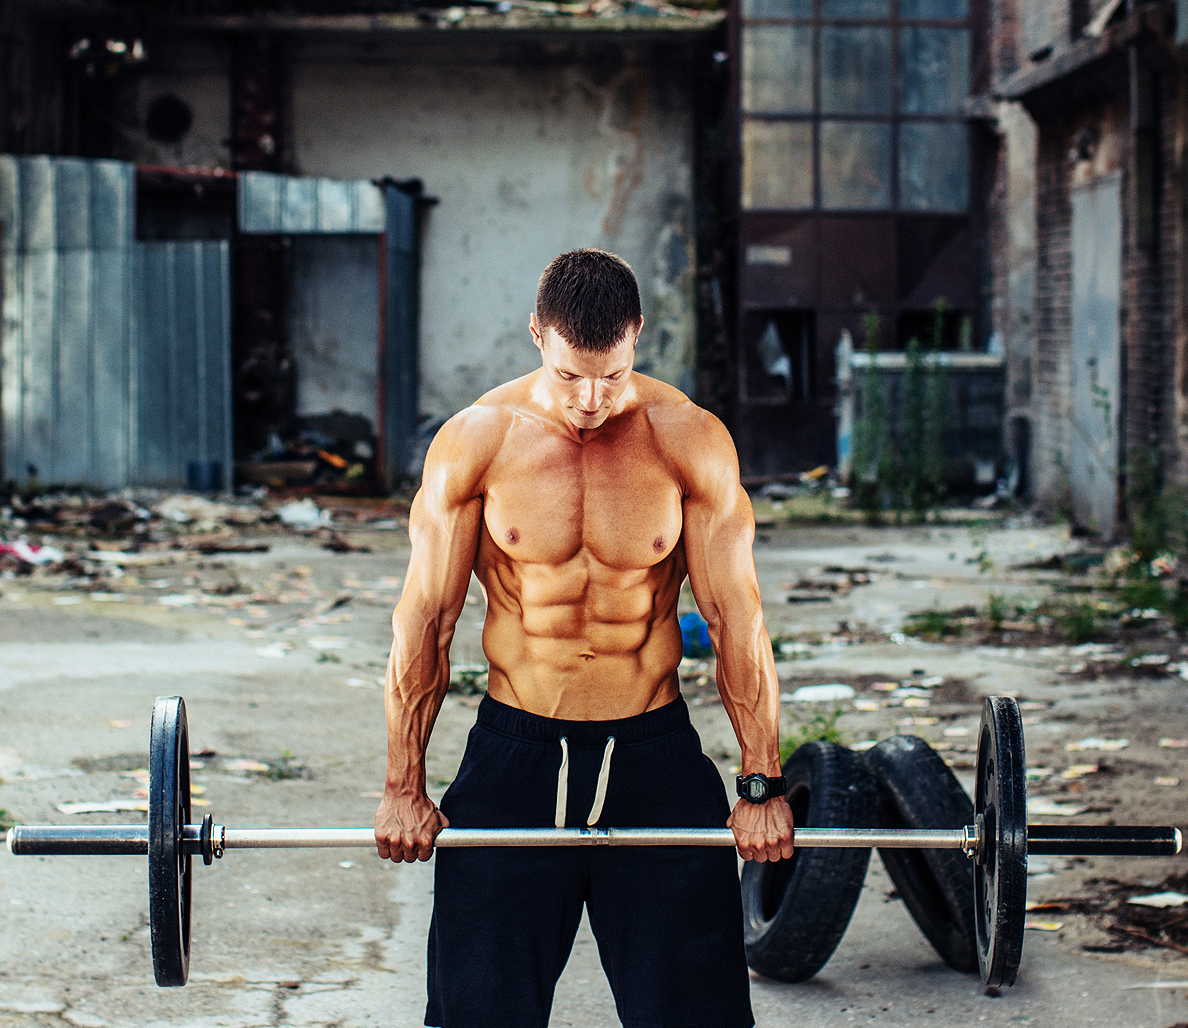 Best Exercises for Men: The 15 Most Important Exercises for Men